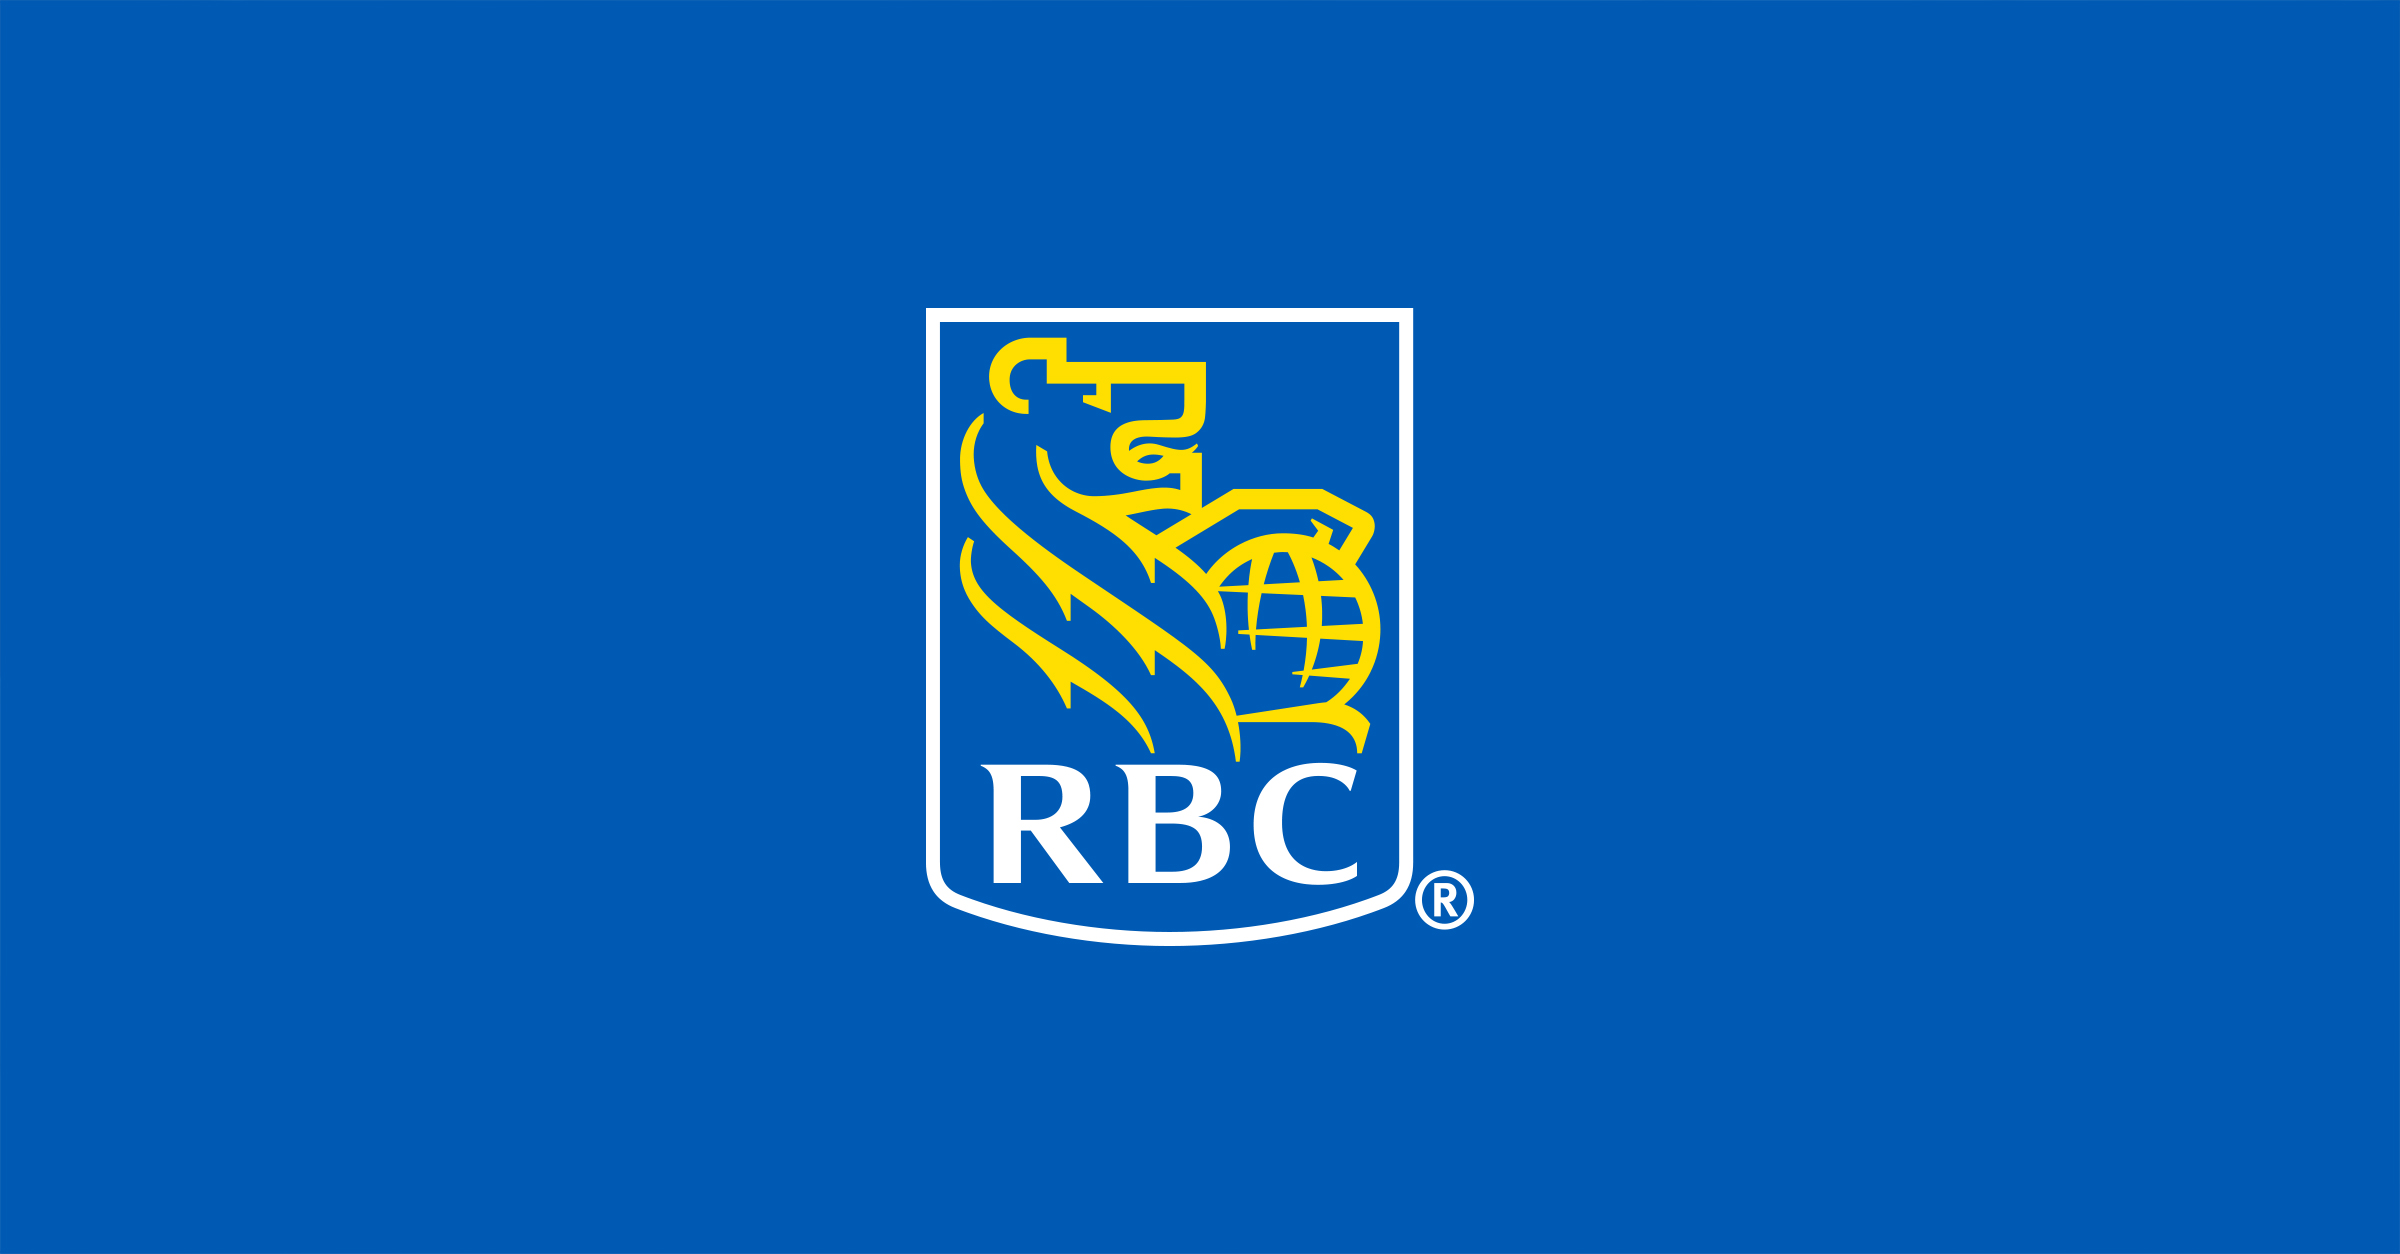 royal bank of canada Dream big with rbc explore our jobs and discover challenging work that will unlock your career potential and help us create new futures.